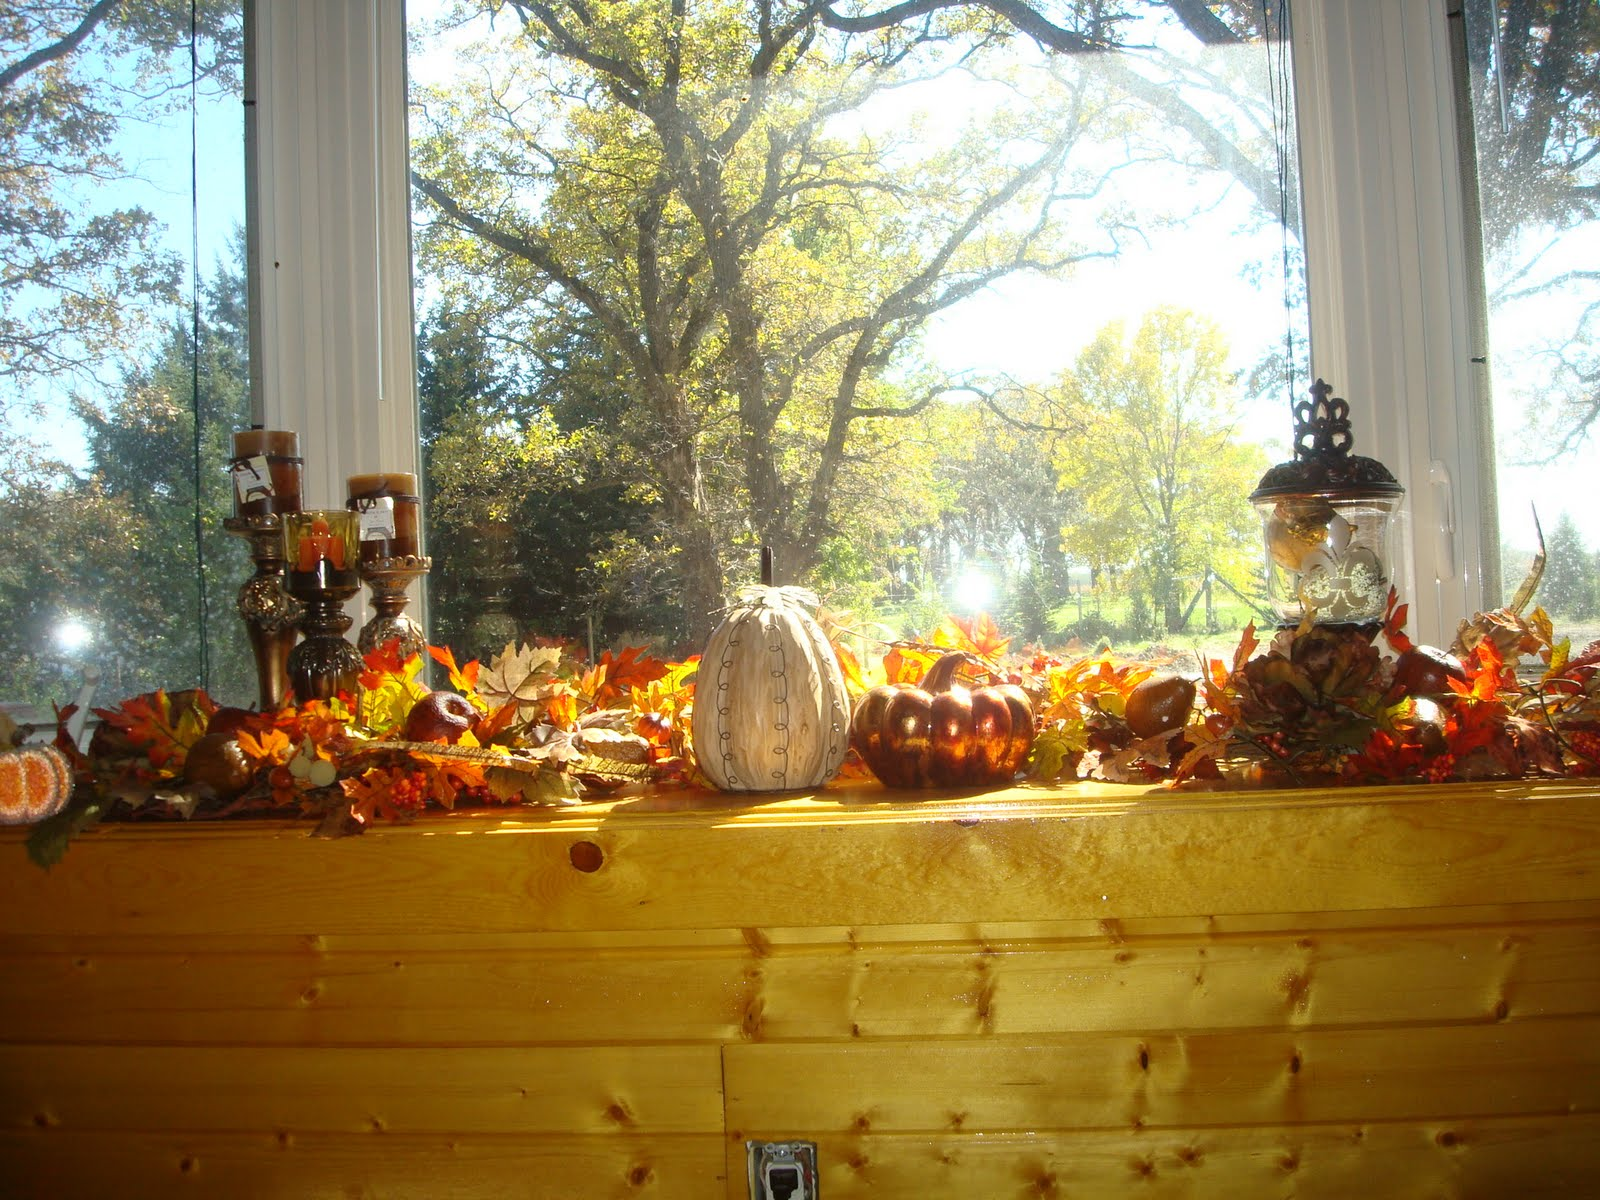 Gypsie my fall window decorations inspired by dina manzo for Autumn window decoration